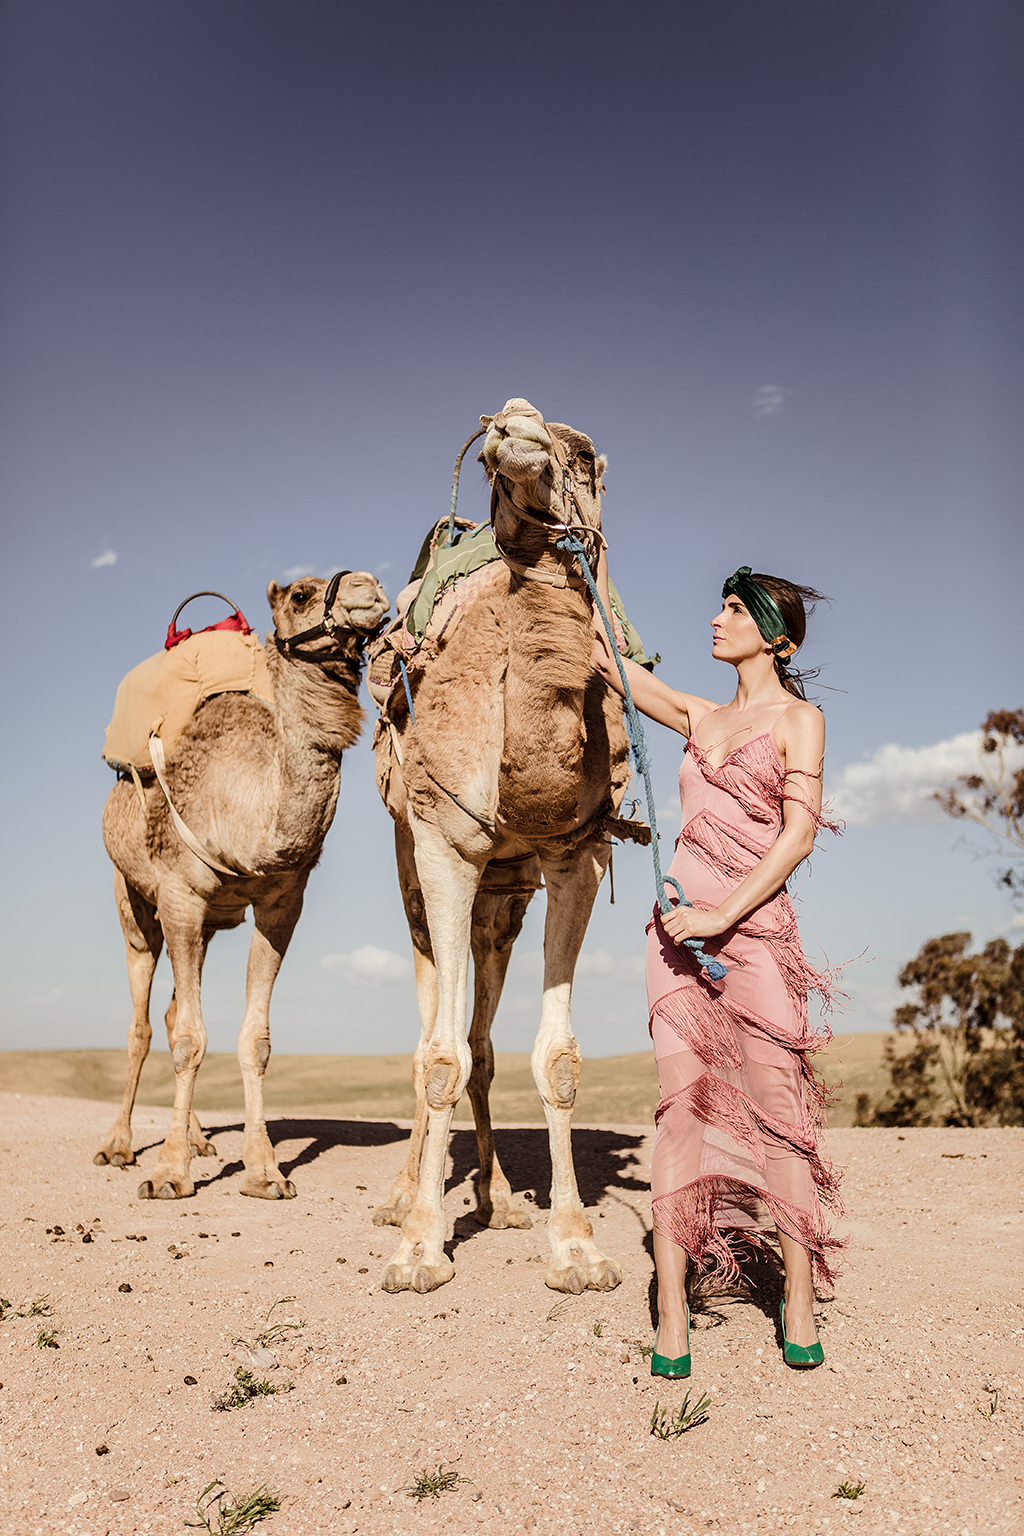 elena-engels-fotografie-marrakech-blogger-travel-shooting-reise-lapause_camp020